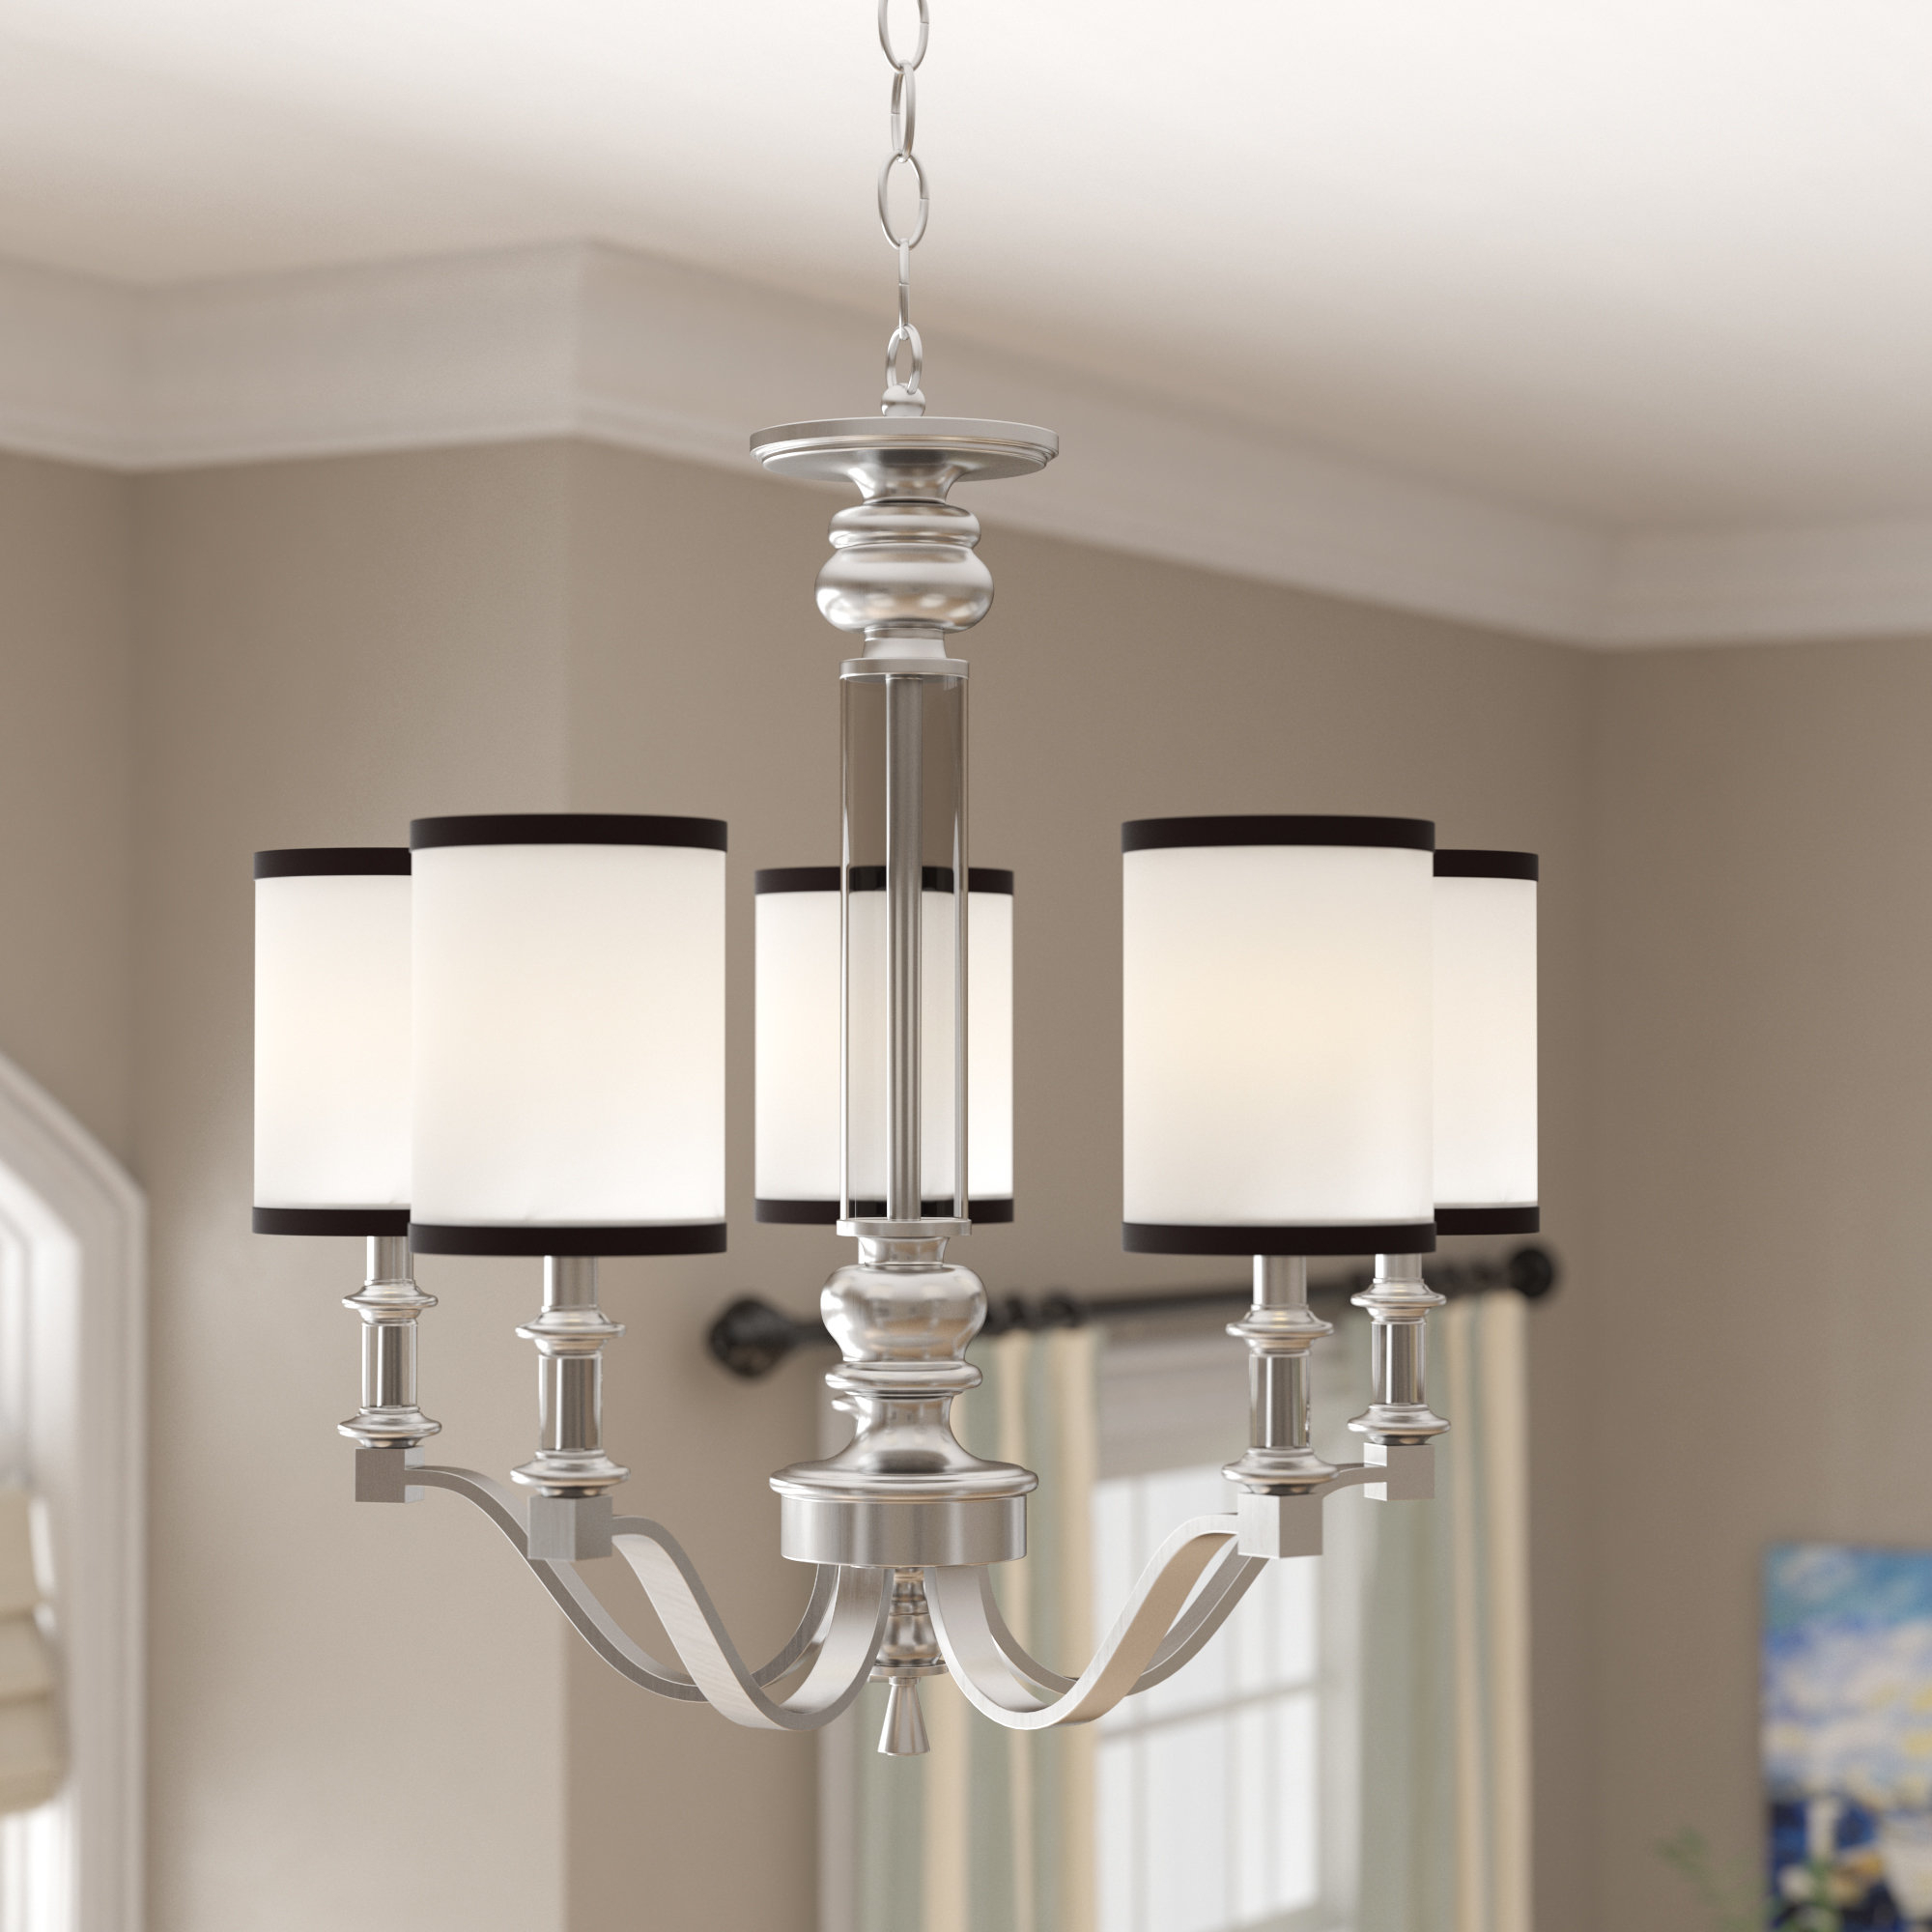 Pfeffer 5-Light Shaded Chandelier intended for Crofoot 5-Light Shaded Chandeliers (Image 18 of 30)